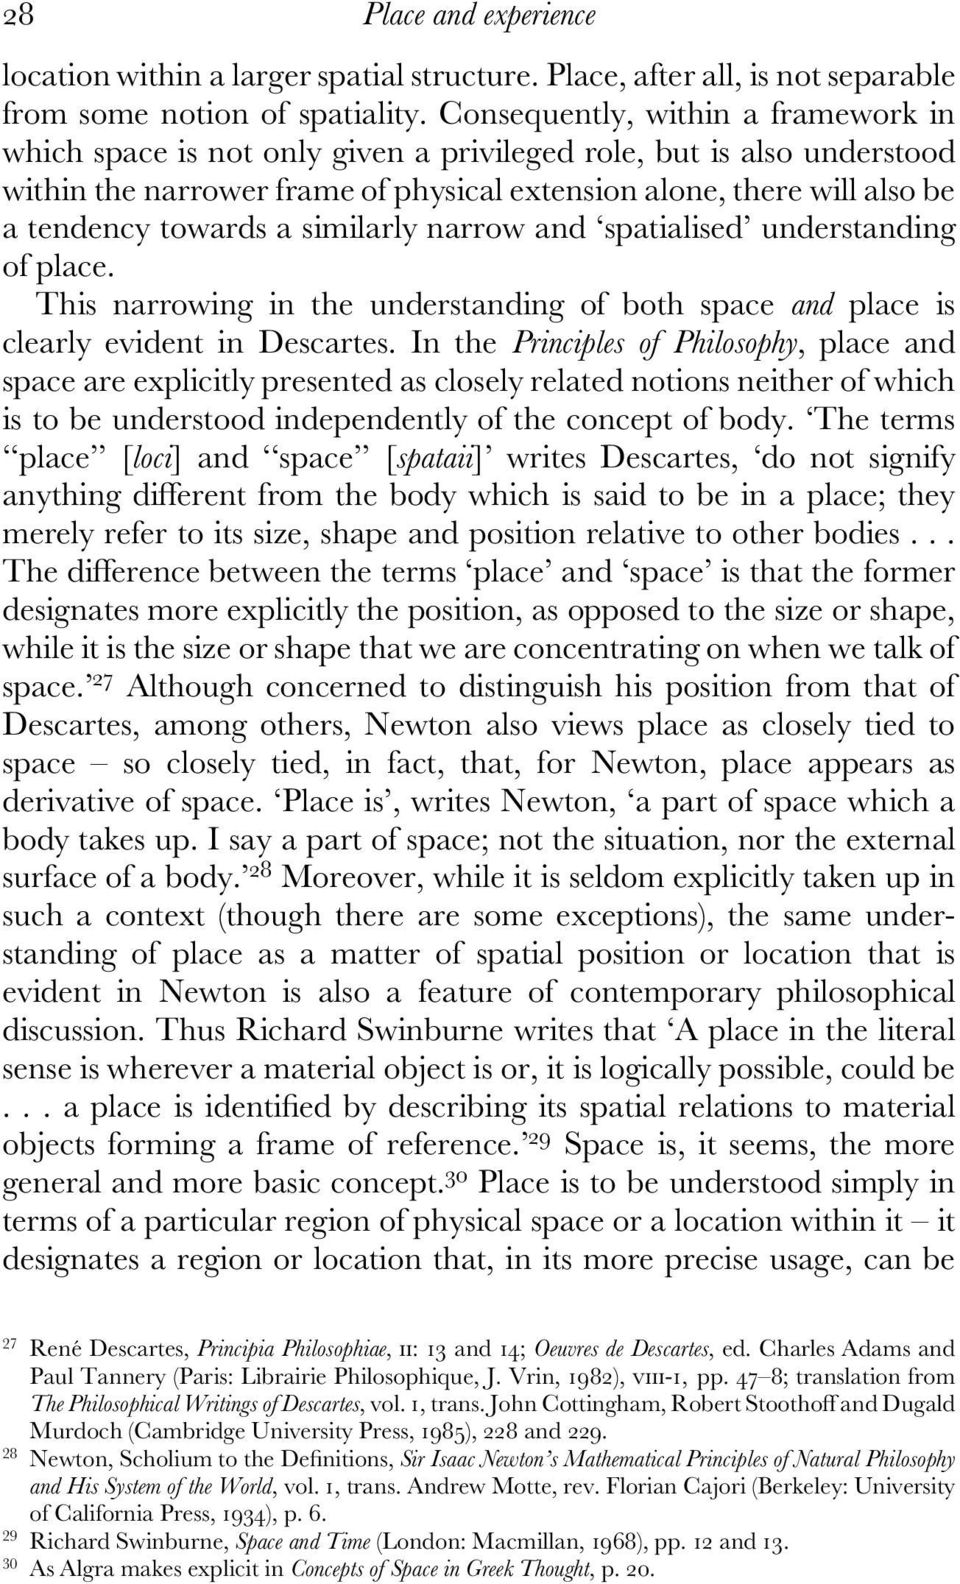 towards a similarly narrow and spatialised understanding of place. This narrowing in the understanding of both space and place is clearly evident in Descartes.